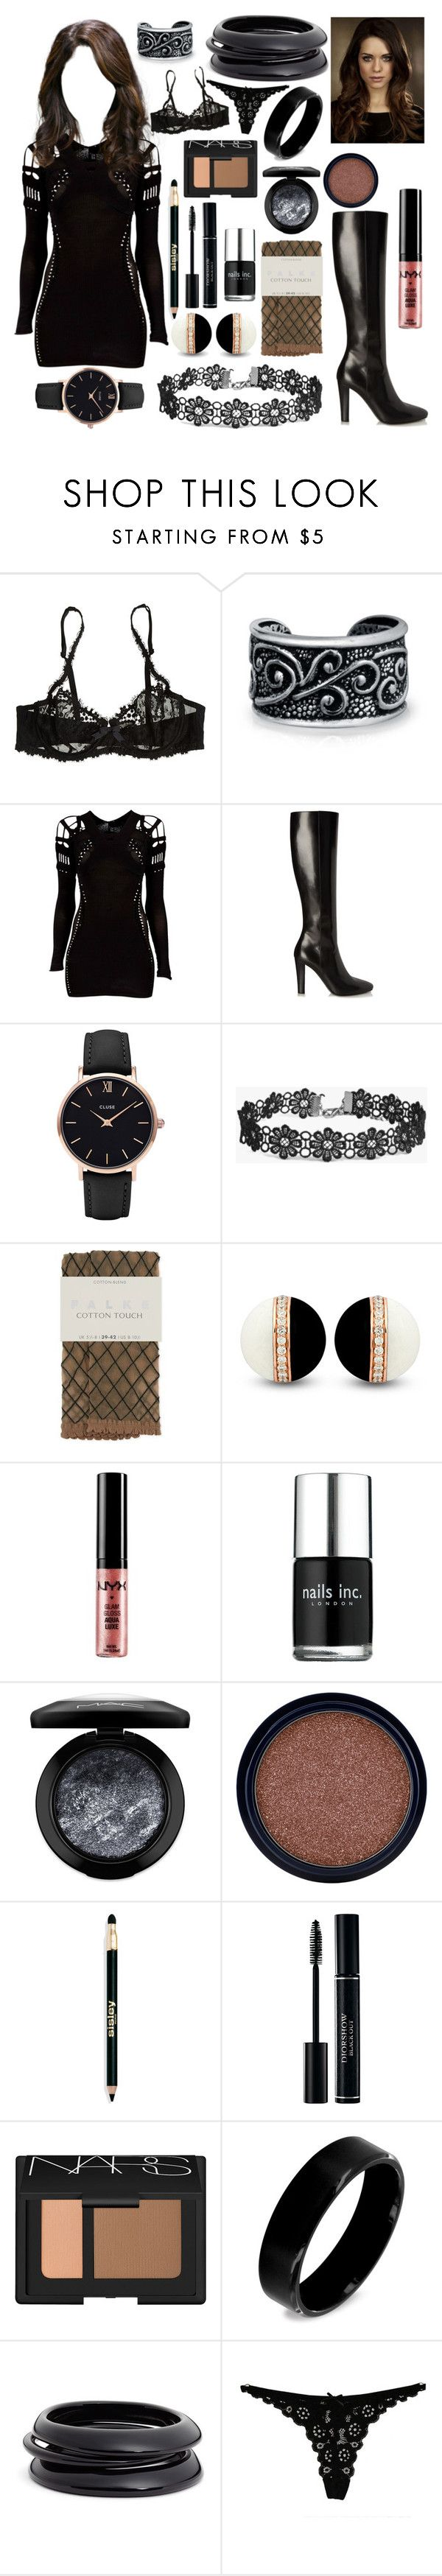 """""""Lee at The Thing"""" by lulu-the-guinea-pig ❤ liked on Polyvore featuring Bling Jewelry, Mark Fast, Yves Saint Laurent, CLUSE, Boohoo, Falke, NYX, Nails Inc., MAC Cosmetics and Max Factor"""